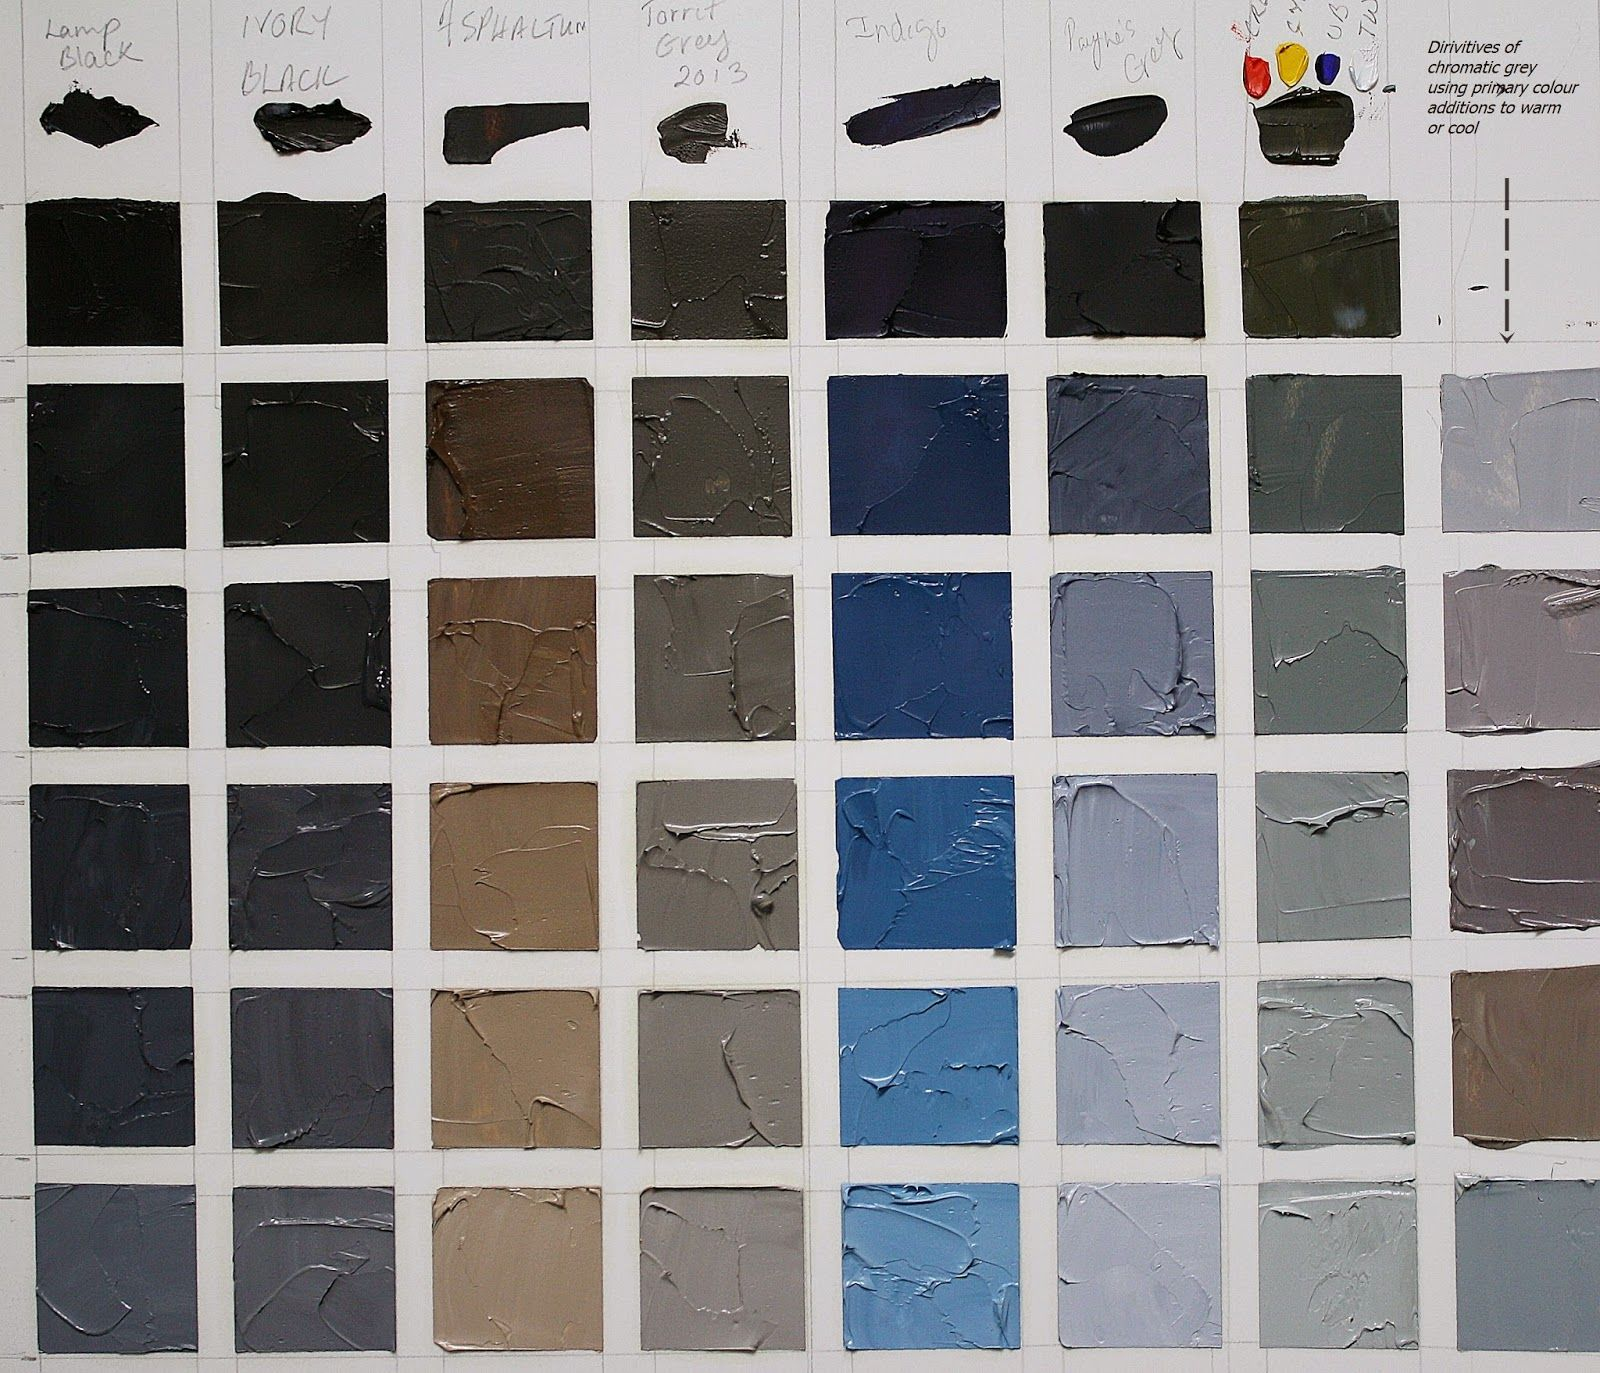 Illustrated Life: The value of colour: Greys and browns